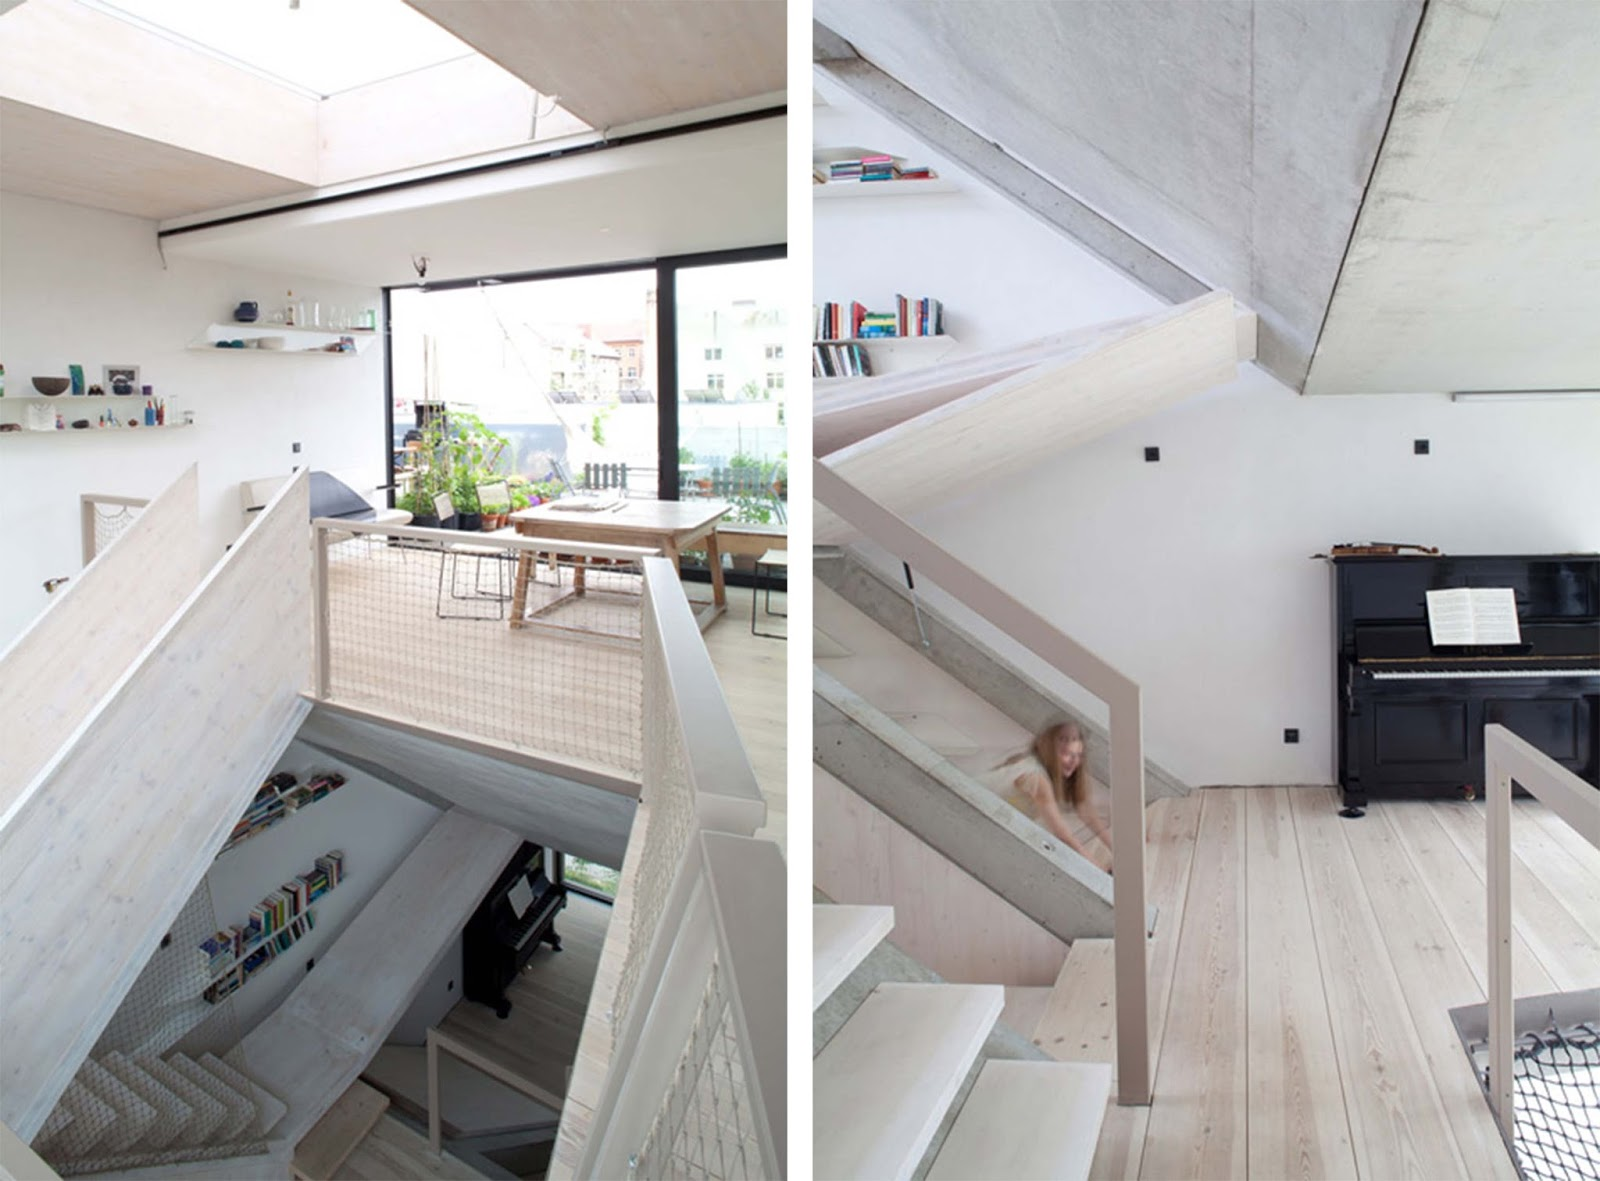 Townhouse b 14 di berlino by xth berlin arc art blog by for Piani di casa con aggiunte future